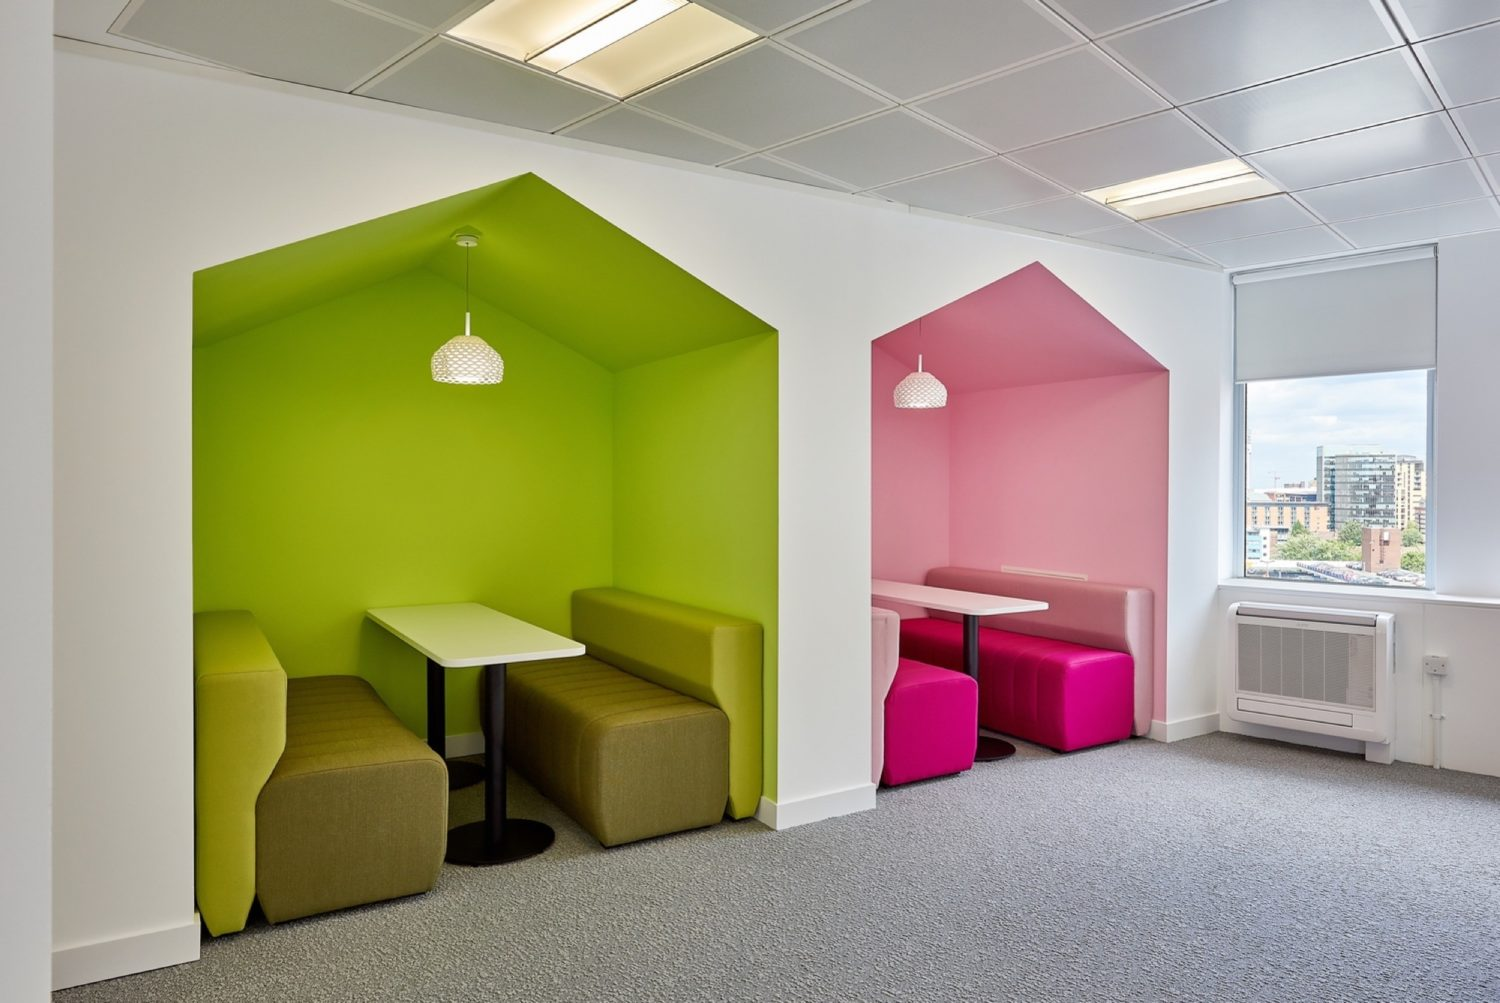 Alzheimers Society meeting pod fit out